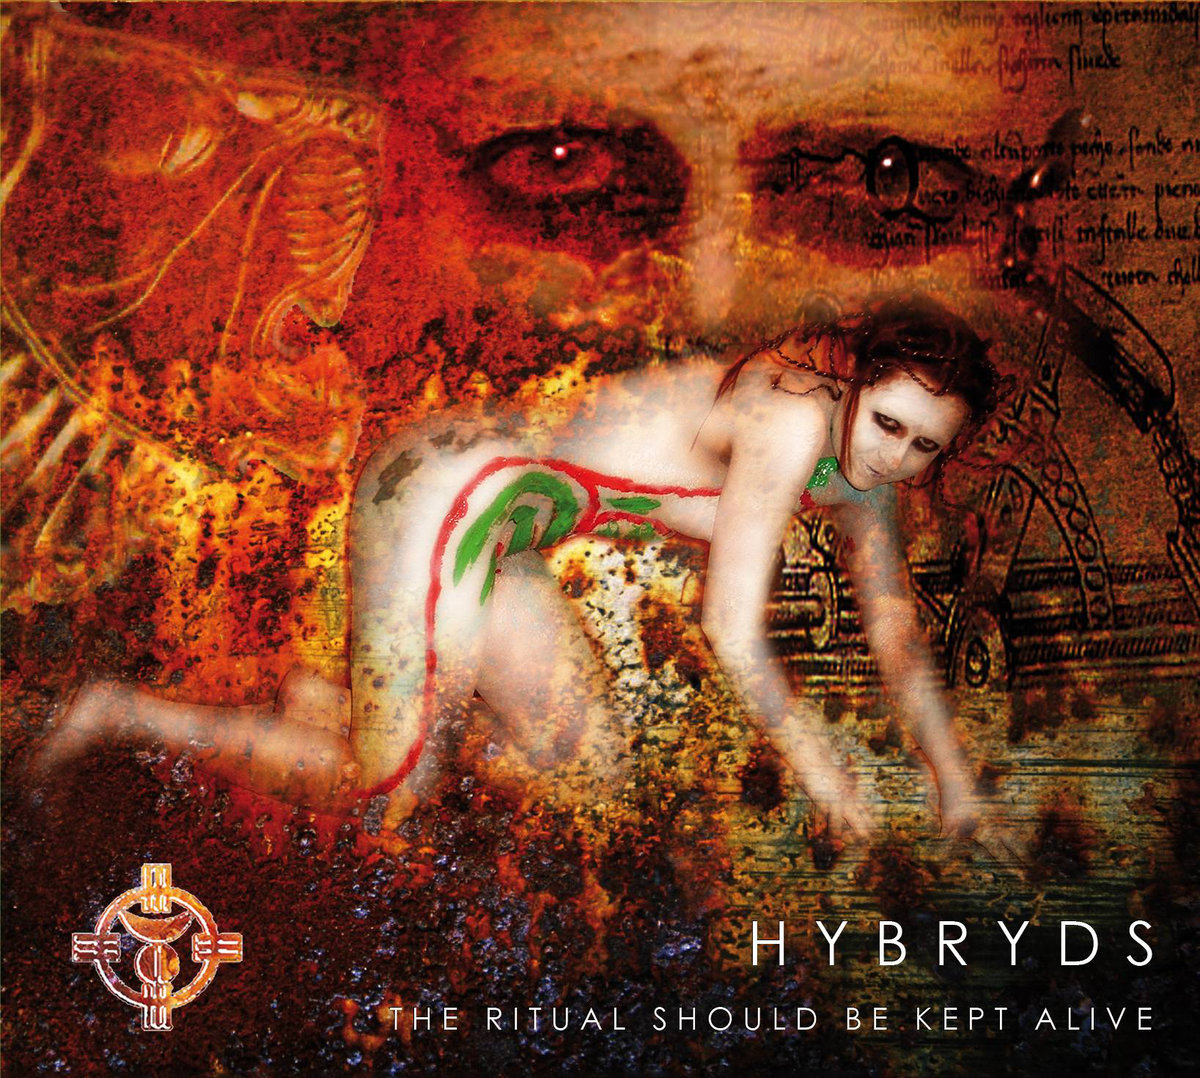 Hybryds - The Ritual Should Be Kept Alive - Recorded Live In France 20th March 1992